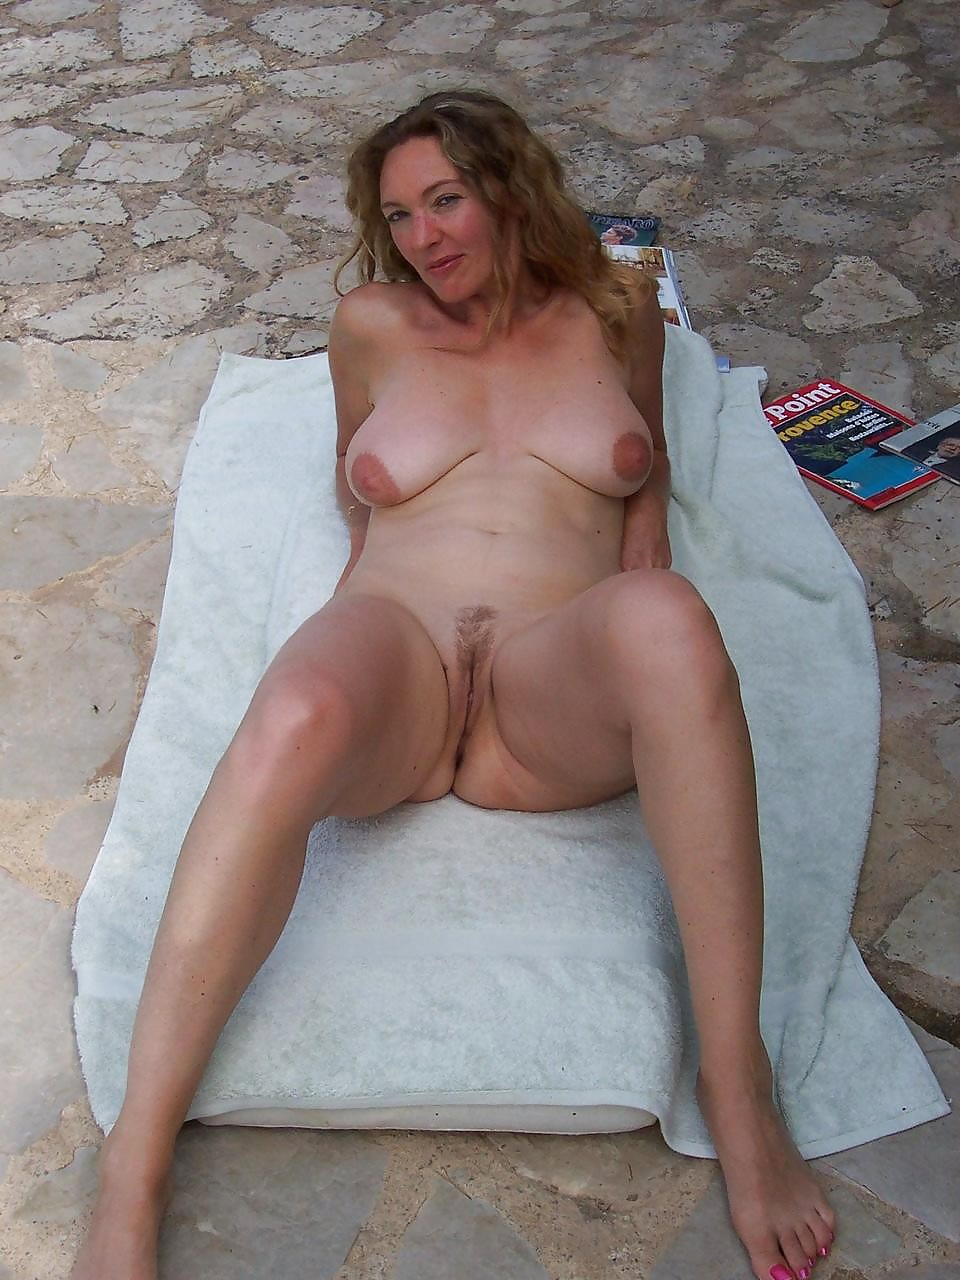 Only The Best Amateur Mature Ladies 108 - 36 Pics  Xhamster-8431